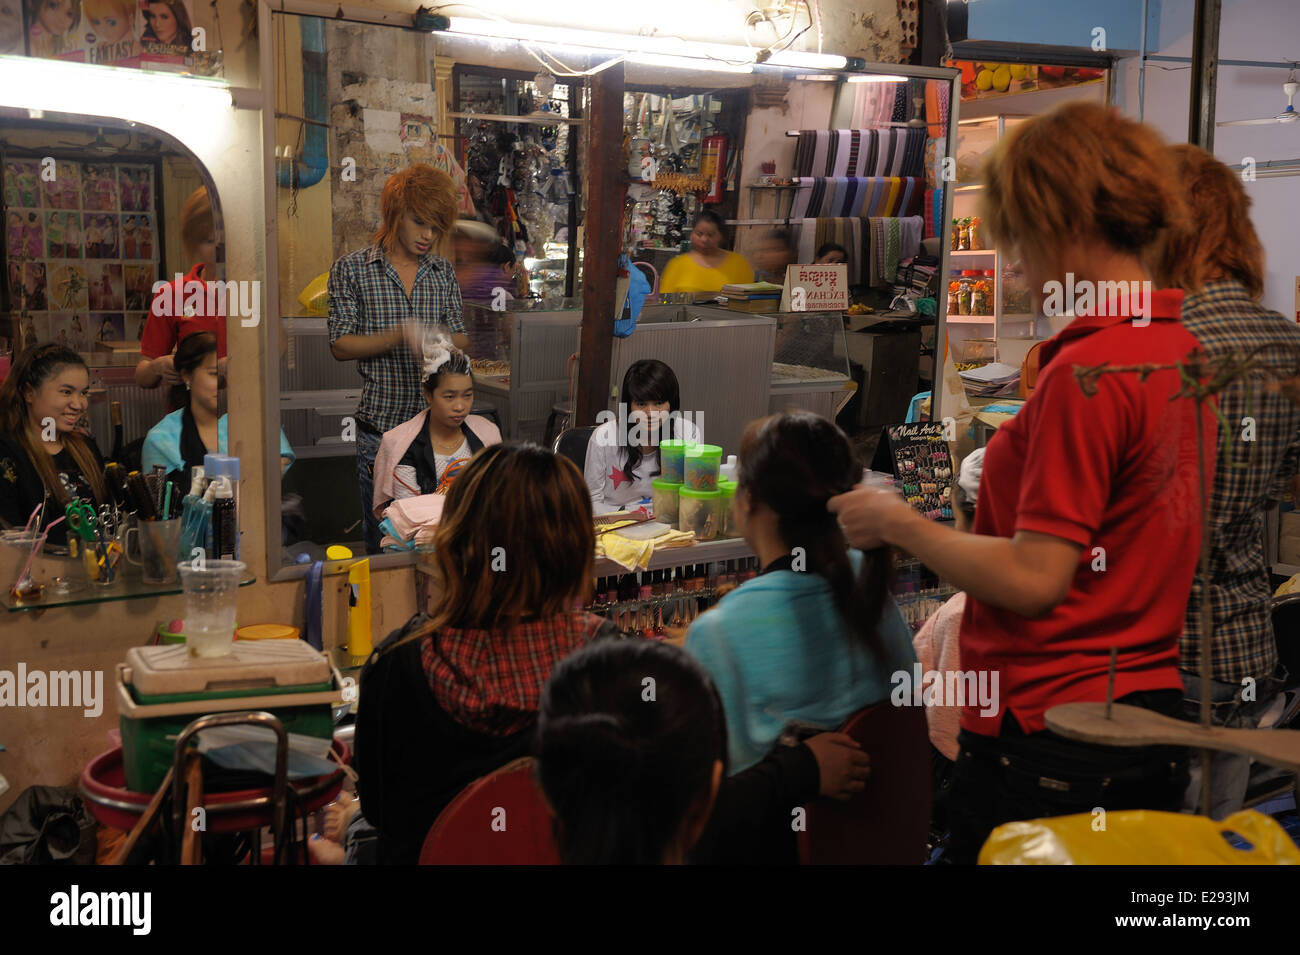 Local hairdresser salon in covered market in Siem Reap - Stock Image